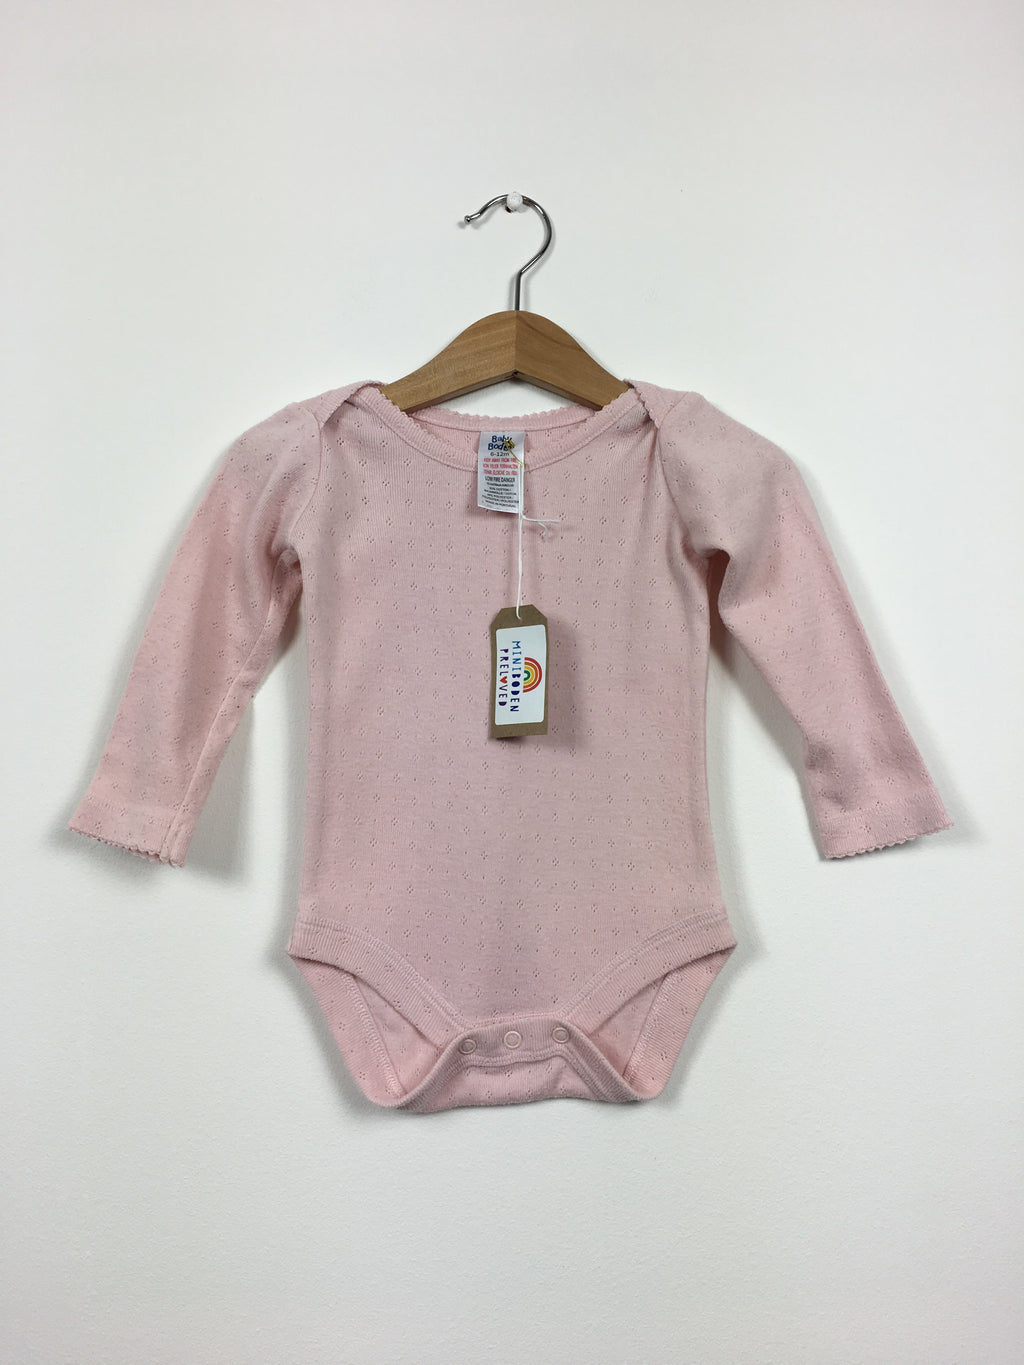 Pink Pointelle Vest Top (Age 6-12 Months)